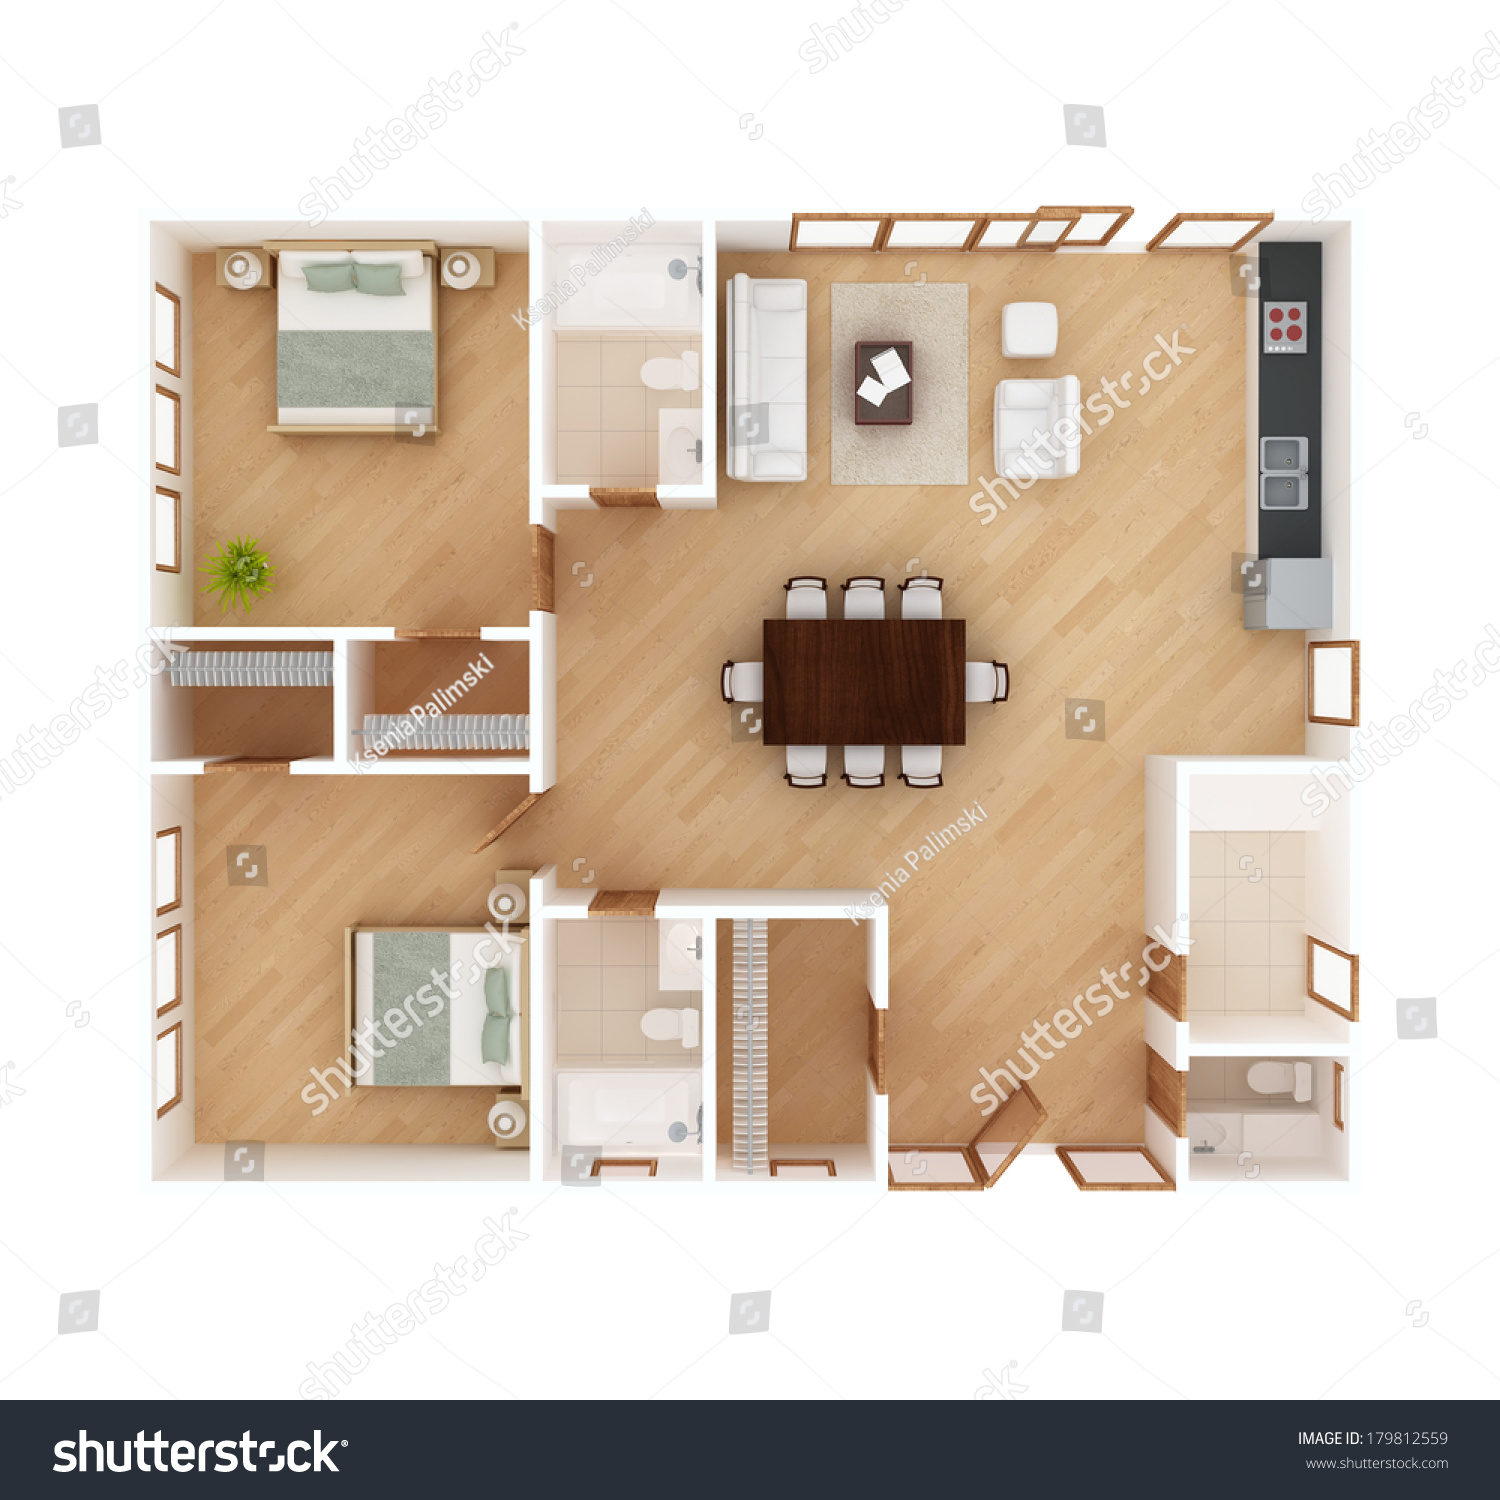 Royalty free 3d floor plan top view of a house 179812559 3d view home design